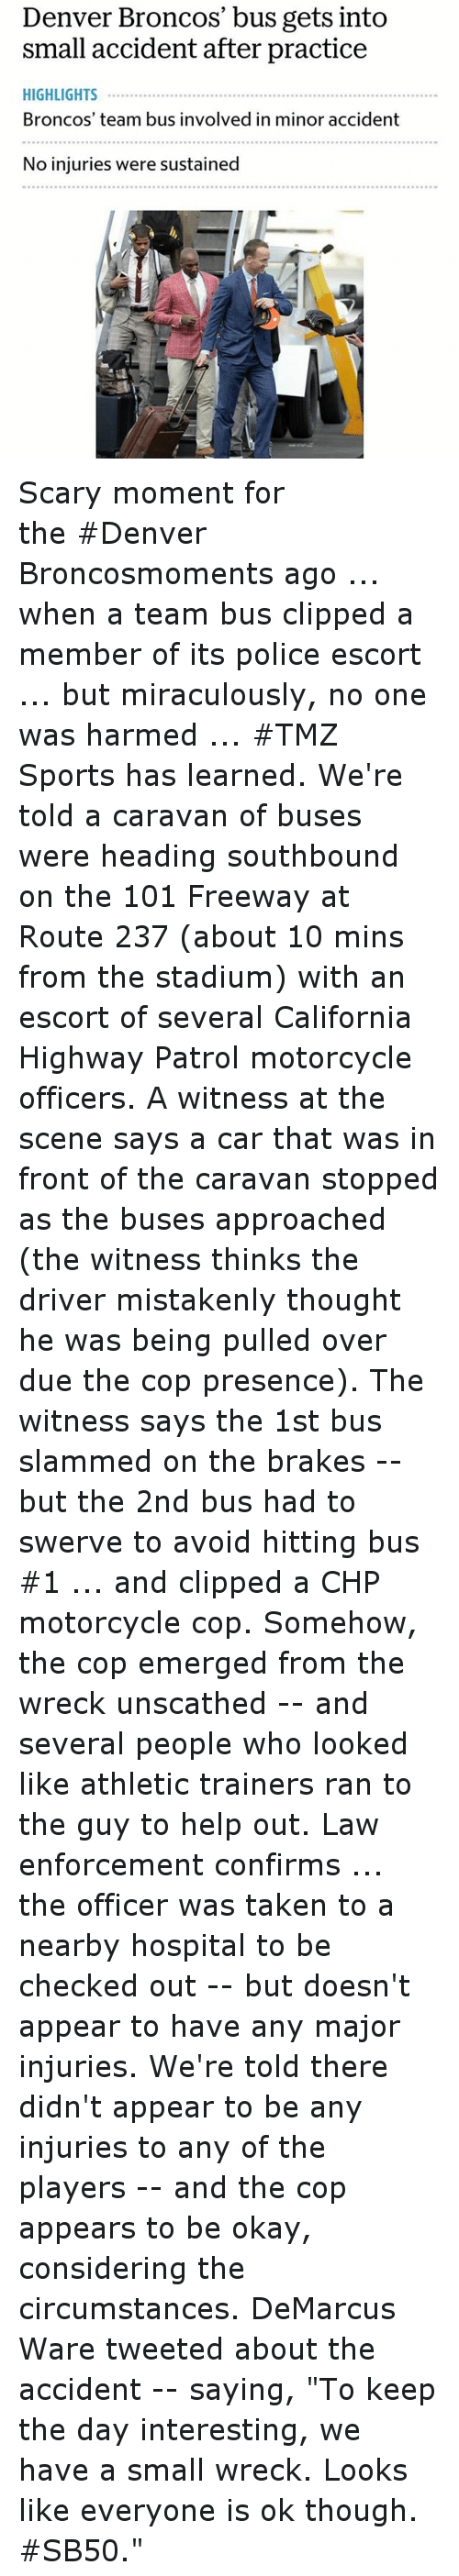 """Cars, Denver Broncos, and Funny: Denver Broncos' bus gets into  small accident after practice  HIGHLIGHTS  Broncos' team bus involved in minor accident  No injuries were sustained Scary moment for theDenver Broncosmoments ago ... when a team bus clipped a member of its police escort ... but miraculously, no one was harmed ...TMZ Sportshas learned. -We're told a caravan of buses were heading southbound on the 101 Freeway at Route 237 (about 10 mins from the stadium) with an escort of several California Highway Patrol motorcycle officers. -A witness at the scene says a car that was in front of the caravan stopped as the buses approached (the witness thinks the driver mistakenly thought he was being pulled over due the cop presence). The witness says the 1st bus slammed on the brakes - but the 2nd bus had to swerve to avoid hitting bus 1 ... and clipped a CHP motorcycle cop. -Somehow, the cop emerged from the wreck unscathed - and several people who looked like athletic trainers ran to the guy to help out. -Law enforcement confirms ... the officer was taken to a nearby hospital to be checked out - but doesn't appear to have any major injuries. -We're told there didn't appear to be any injuries to any of the players - and the cop appears to be okay, considering the circumstances. -DeMarcus Waretweeted about the accident - saying, """"To keep the day interesting, we have a small wreck. Looks like everyone is ok though. SB50."""""""